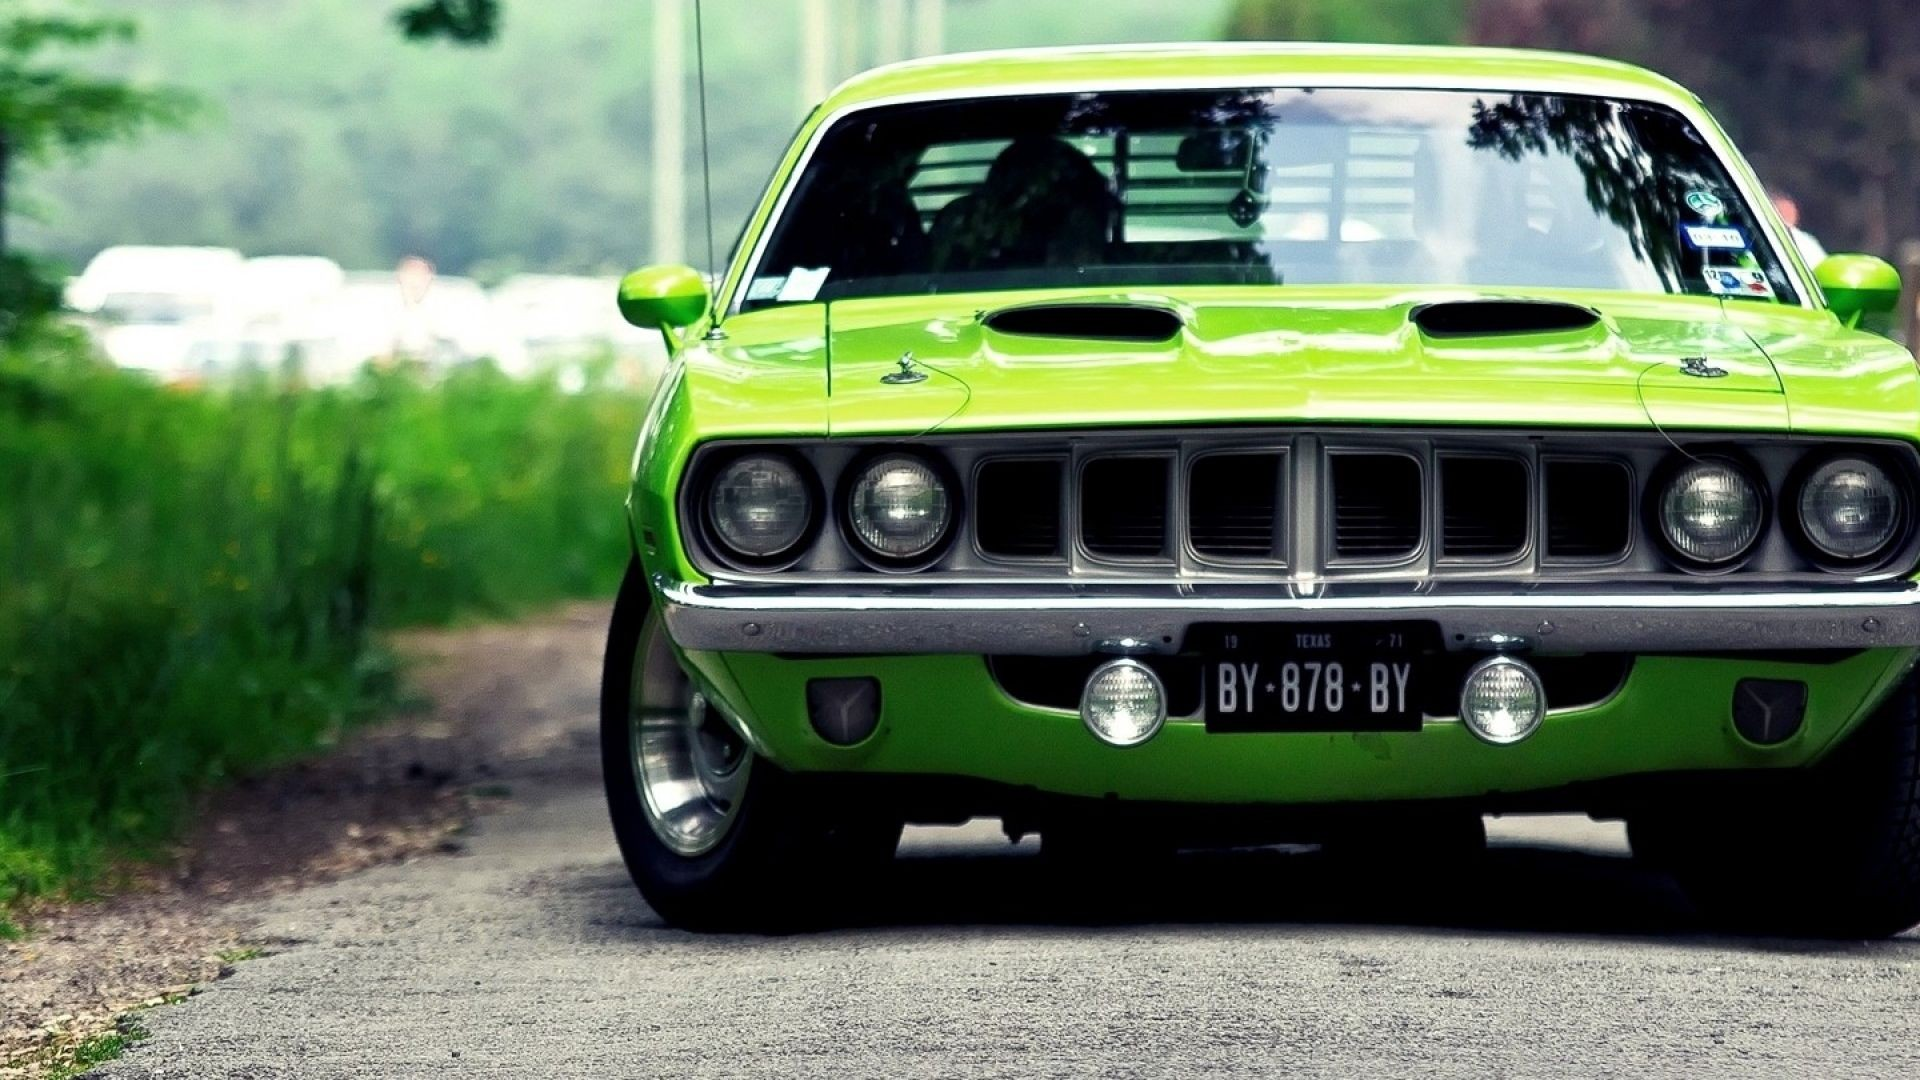 65 Hd Car Wallpapers 183 ① Download Free Stunning